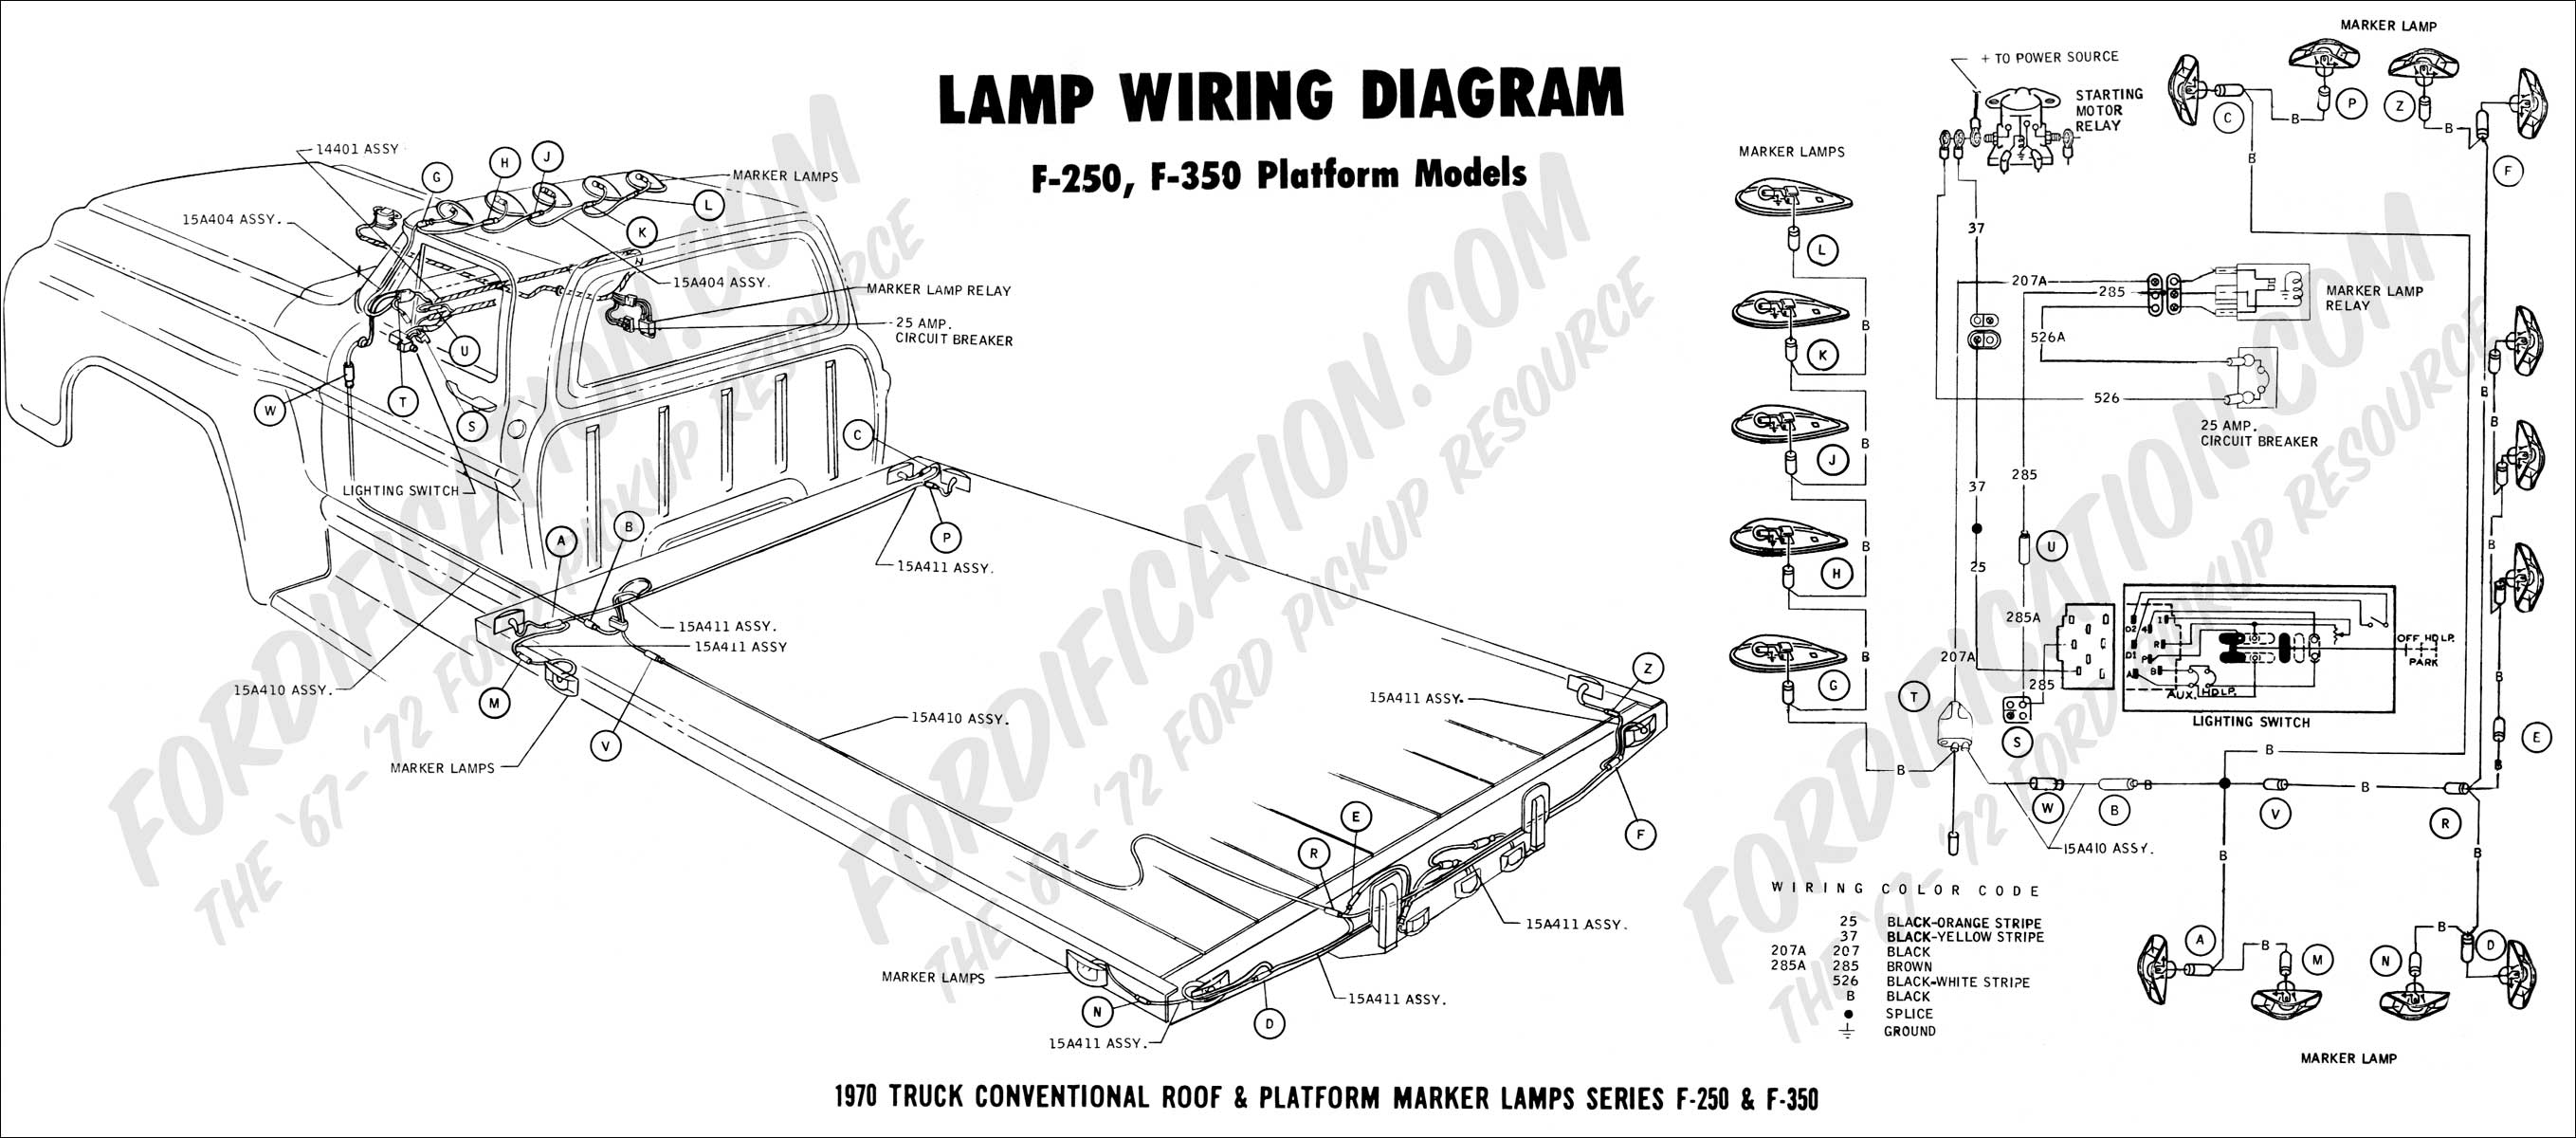 stereo wire diagram for 2003 cadillac cts